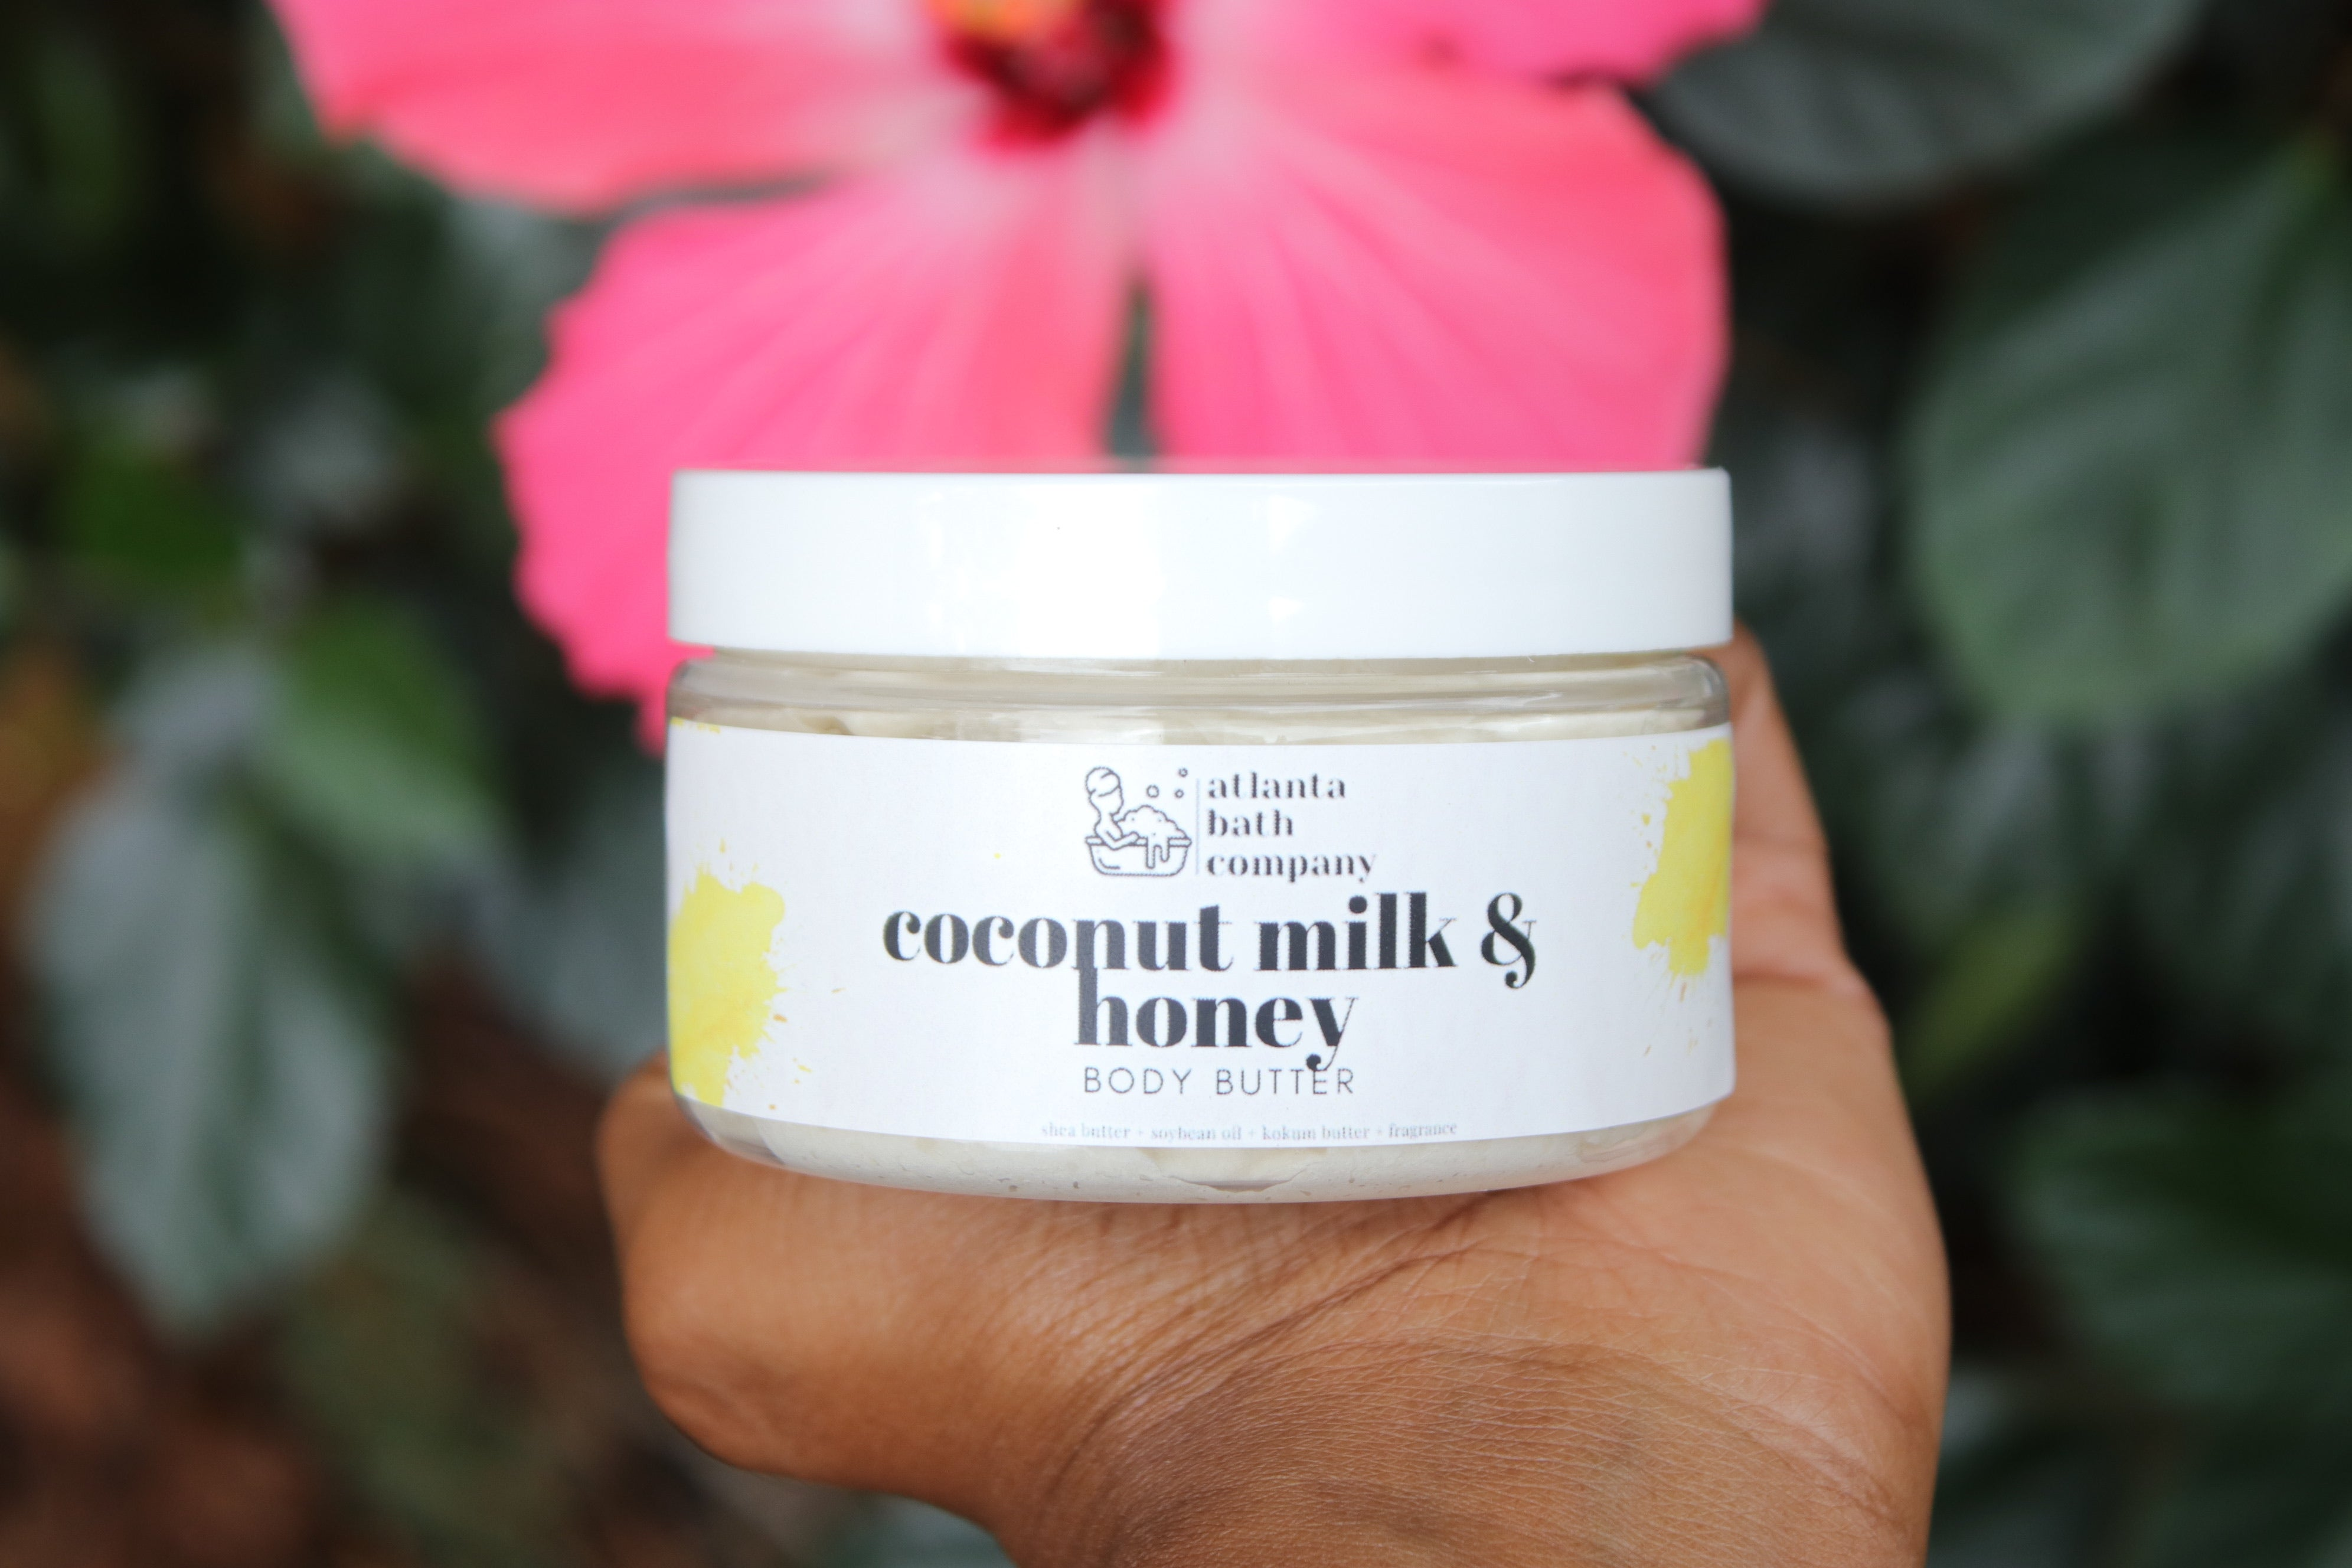 Coconut Milk and Honey Body Butter